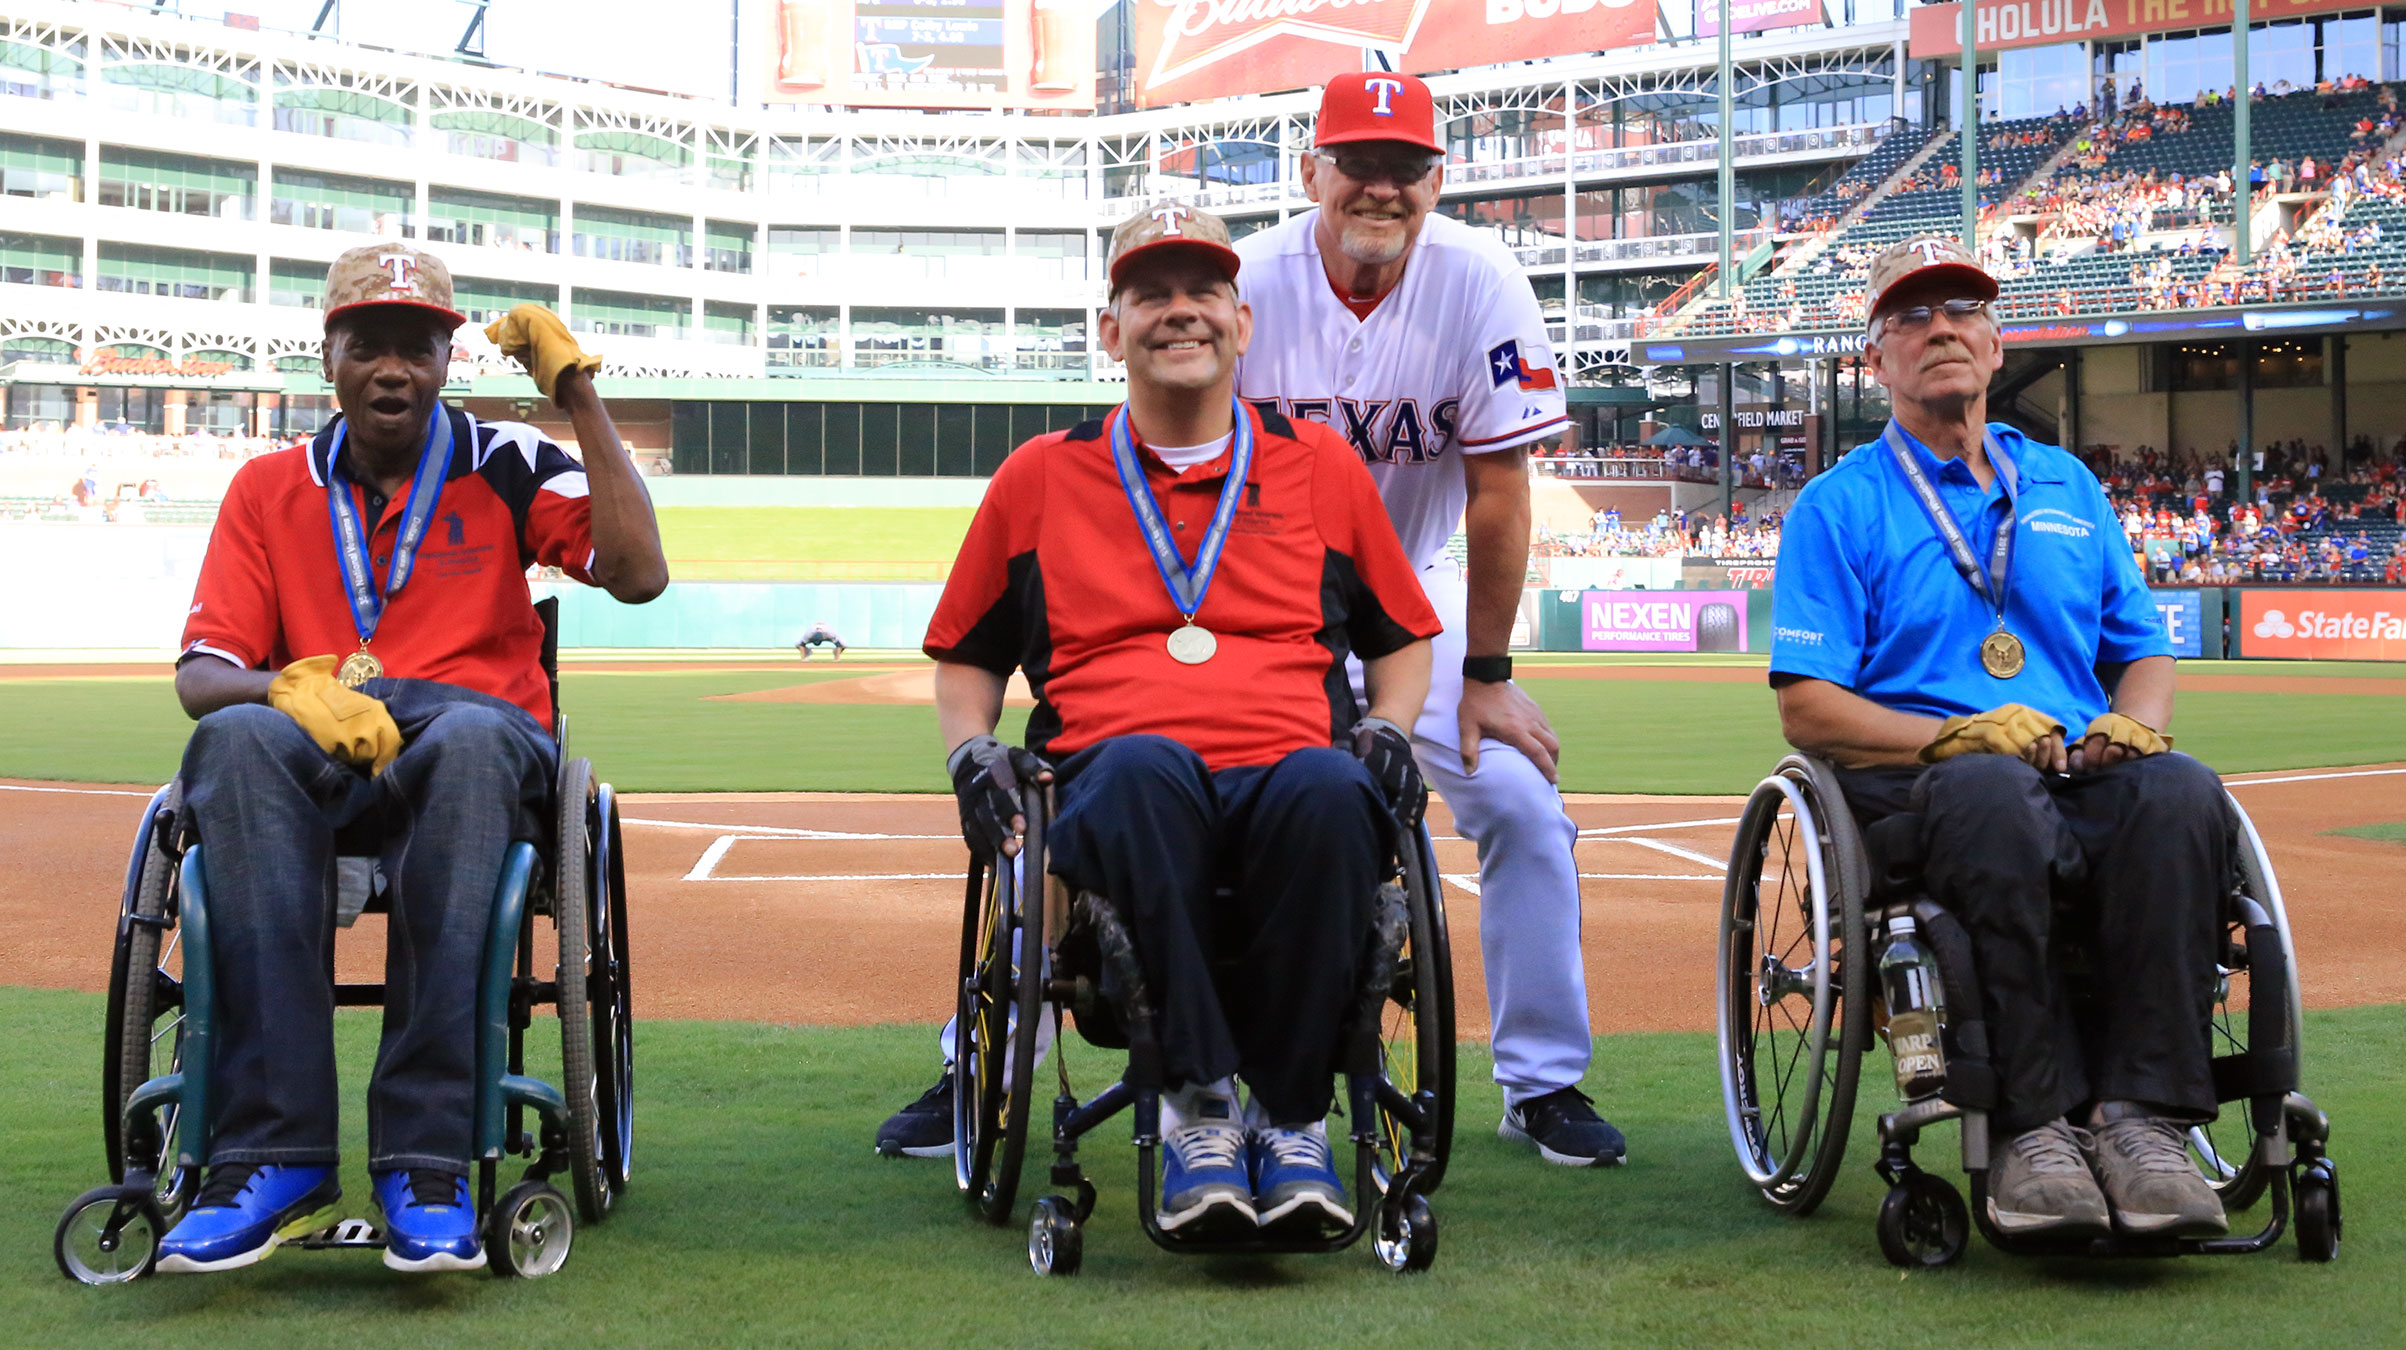 Three Veterans are honored at a Texas Rangers baseball game